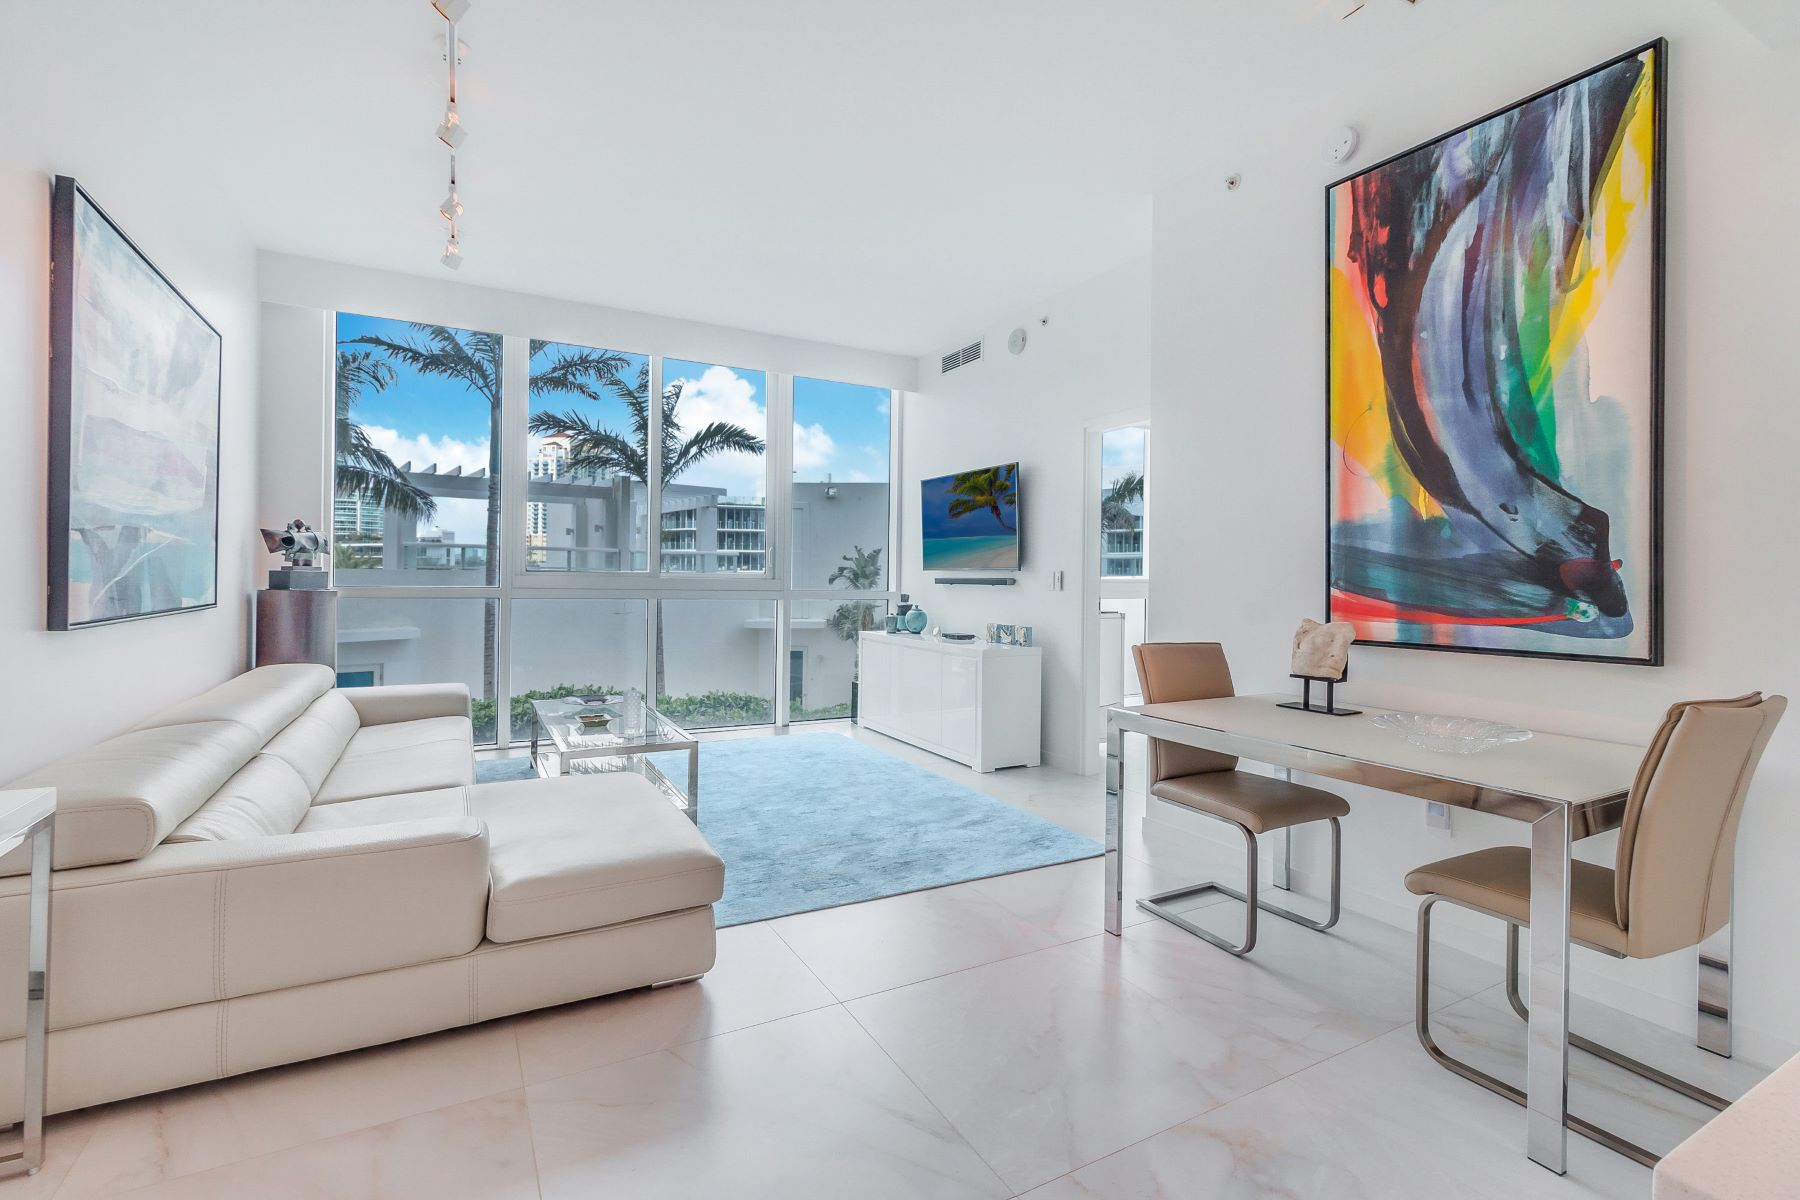 Condominium for Sale at 50 S Pointe Dr 50 S Pointe Dr 612, Miami Beach, Florida, 33139 United States